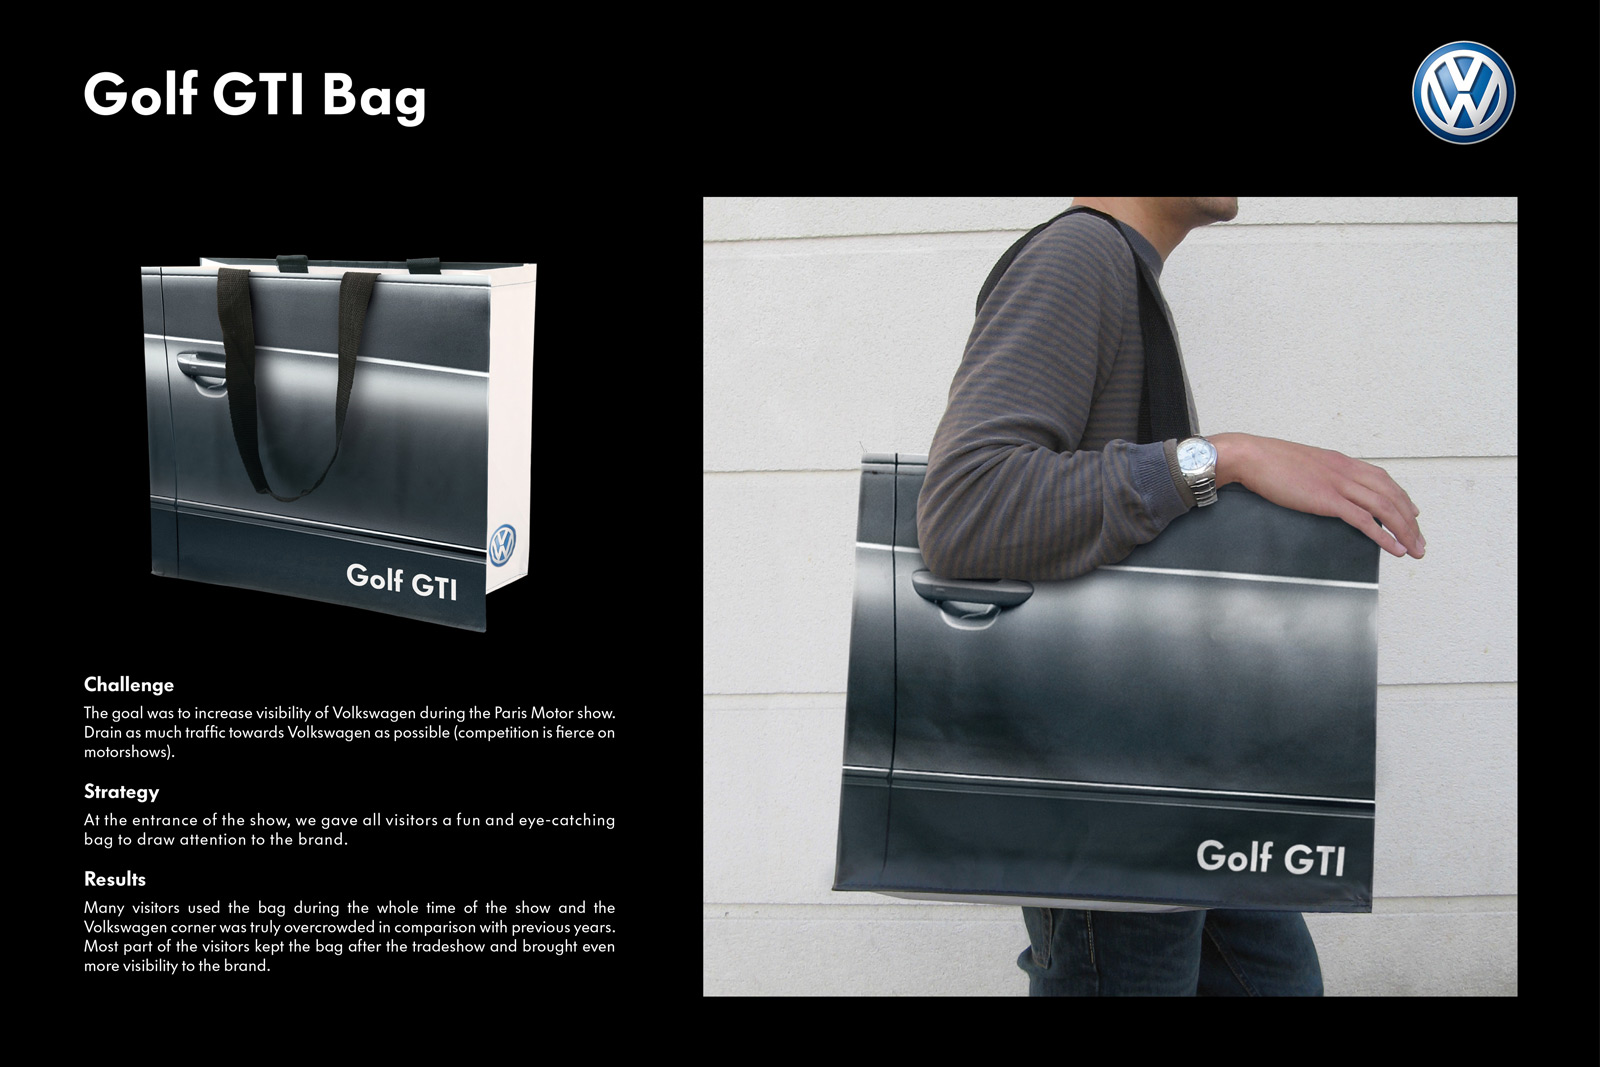 Volkswagen Golf GTI Bag